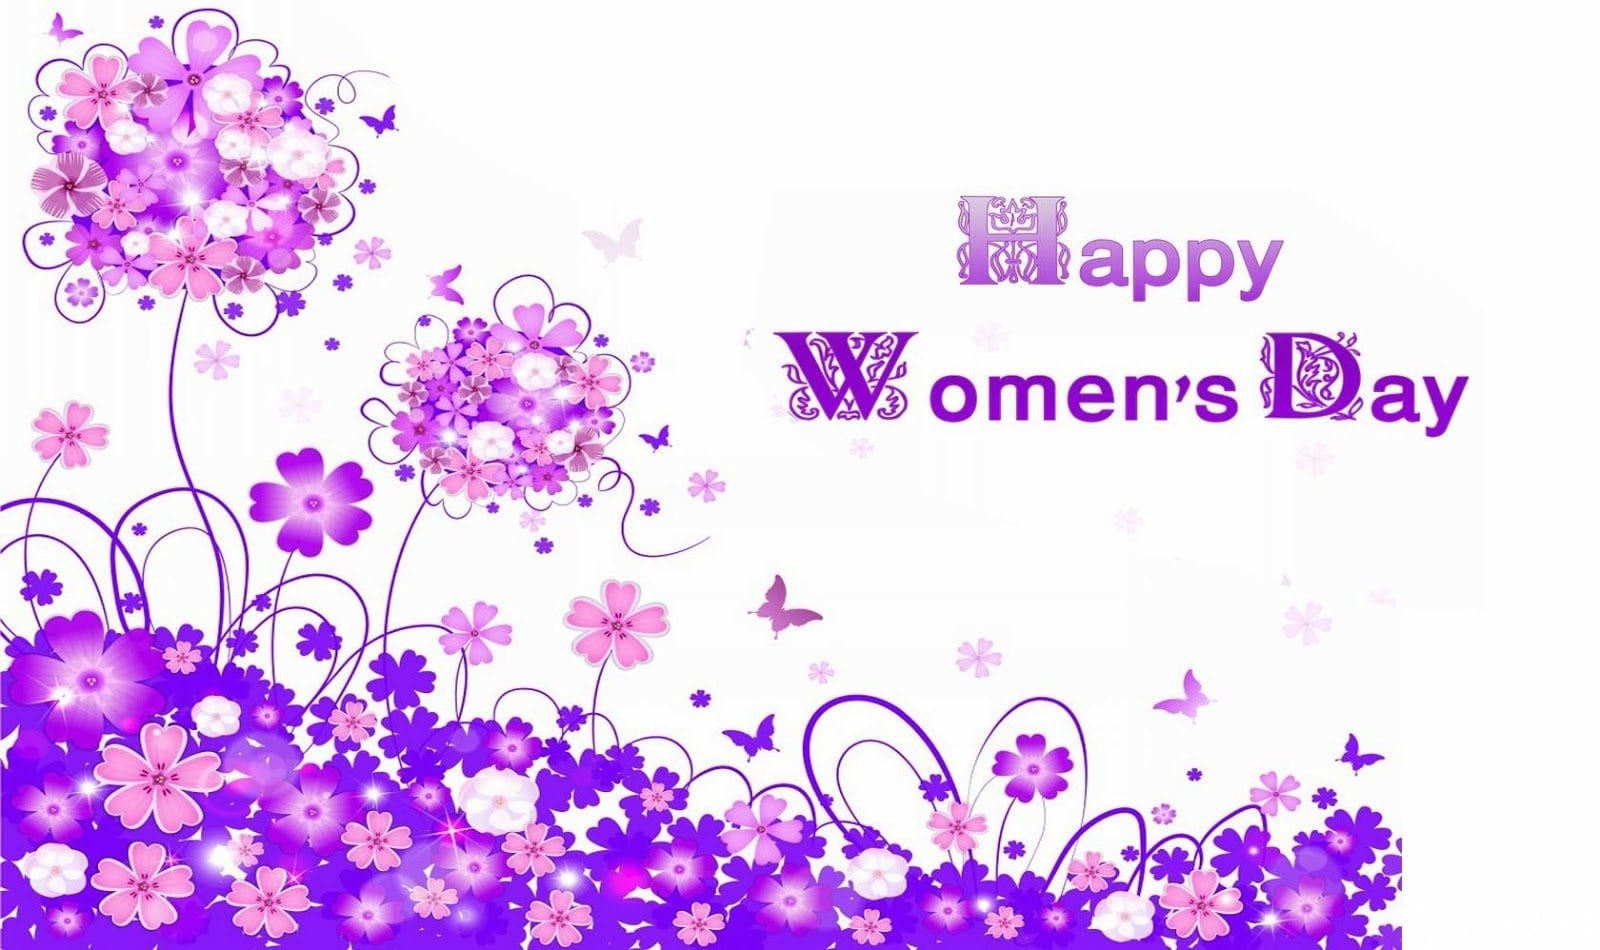 happy-women's-day-cards-wishes-greeting-images-wallpapers